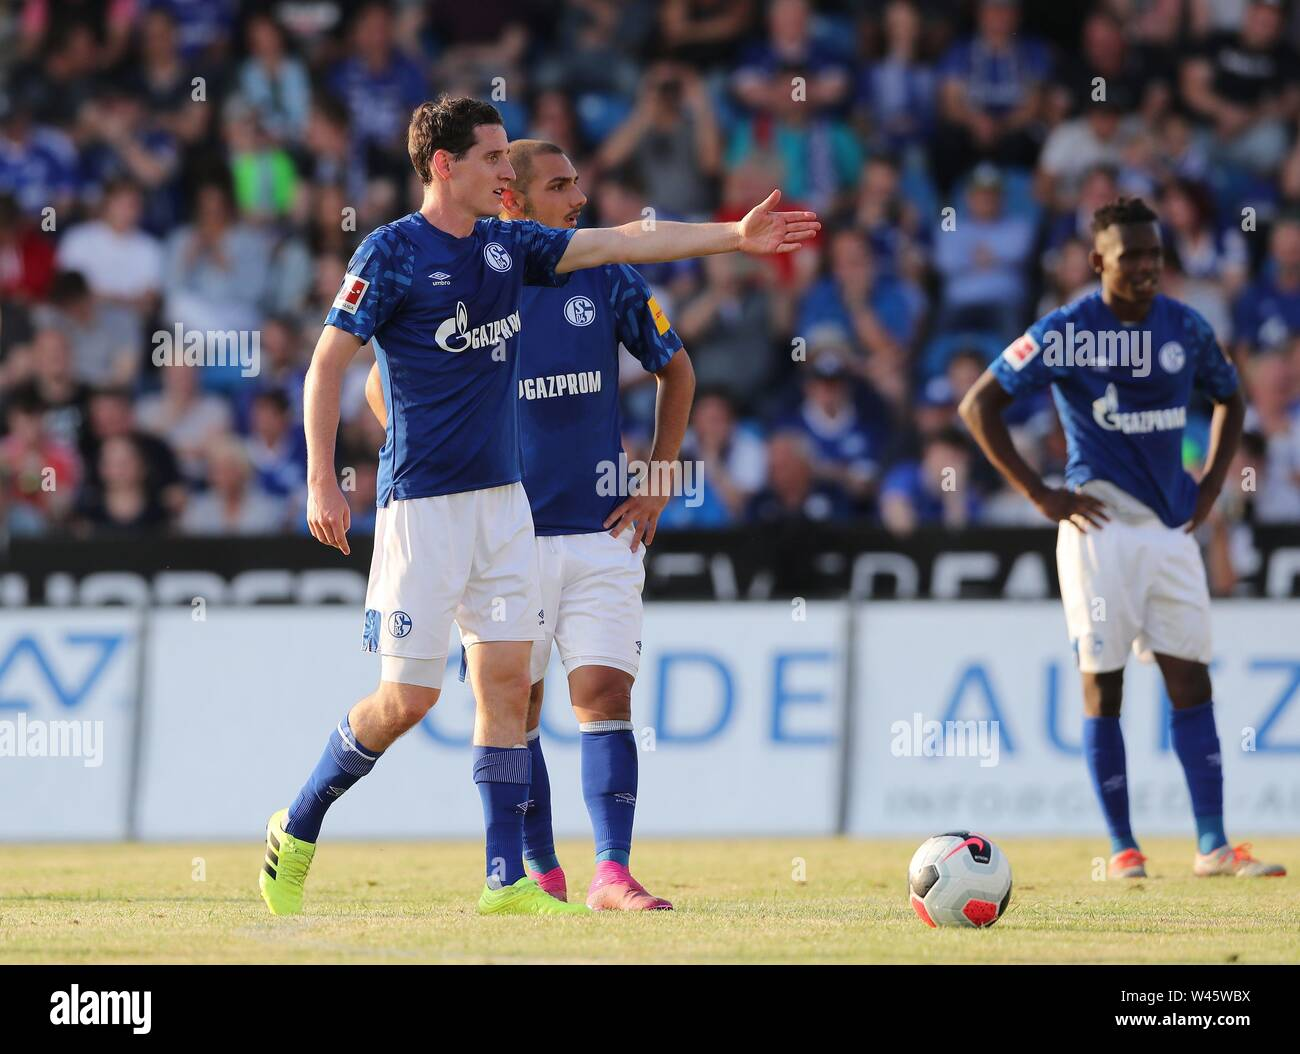 Lotte, Deutschland. 19th July, 2019. firo: 19.07.2019, football, 1.Bundesliga, season 2019/2020, friendly match, FC Schalke 04 - Norwich City Sebastian RUDY, Schalke, gesture with KUTUCU | usage worldwide Credit: dpa/Alamy Live News - Stock Image